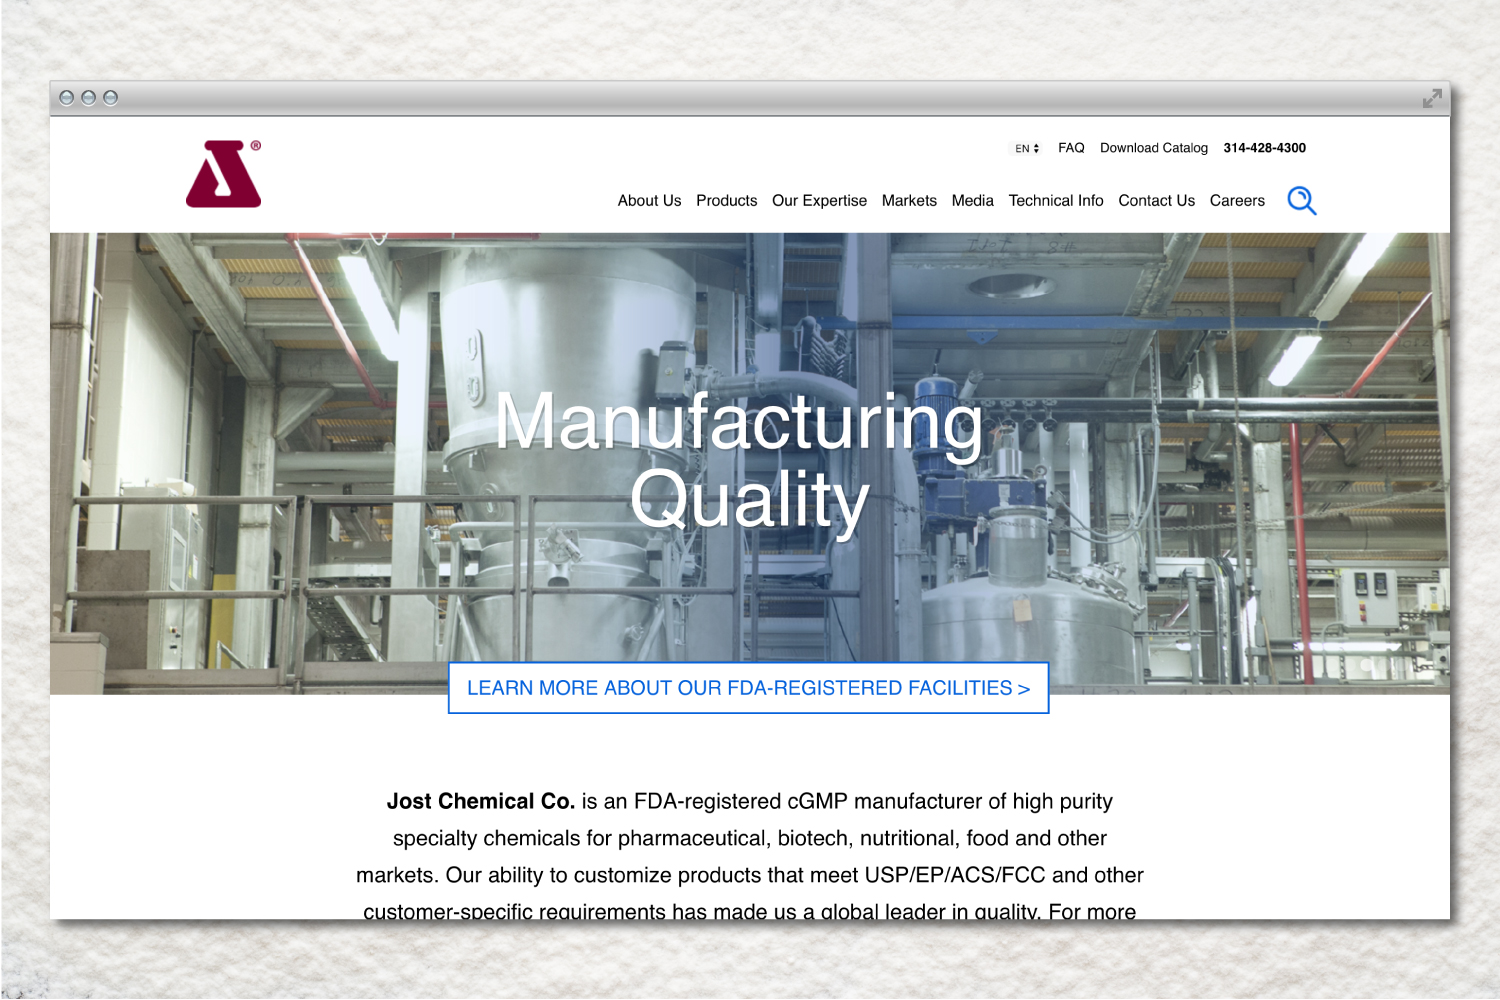 Jost Chemical website design and creative direction.